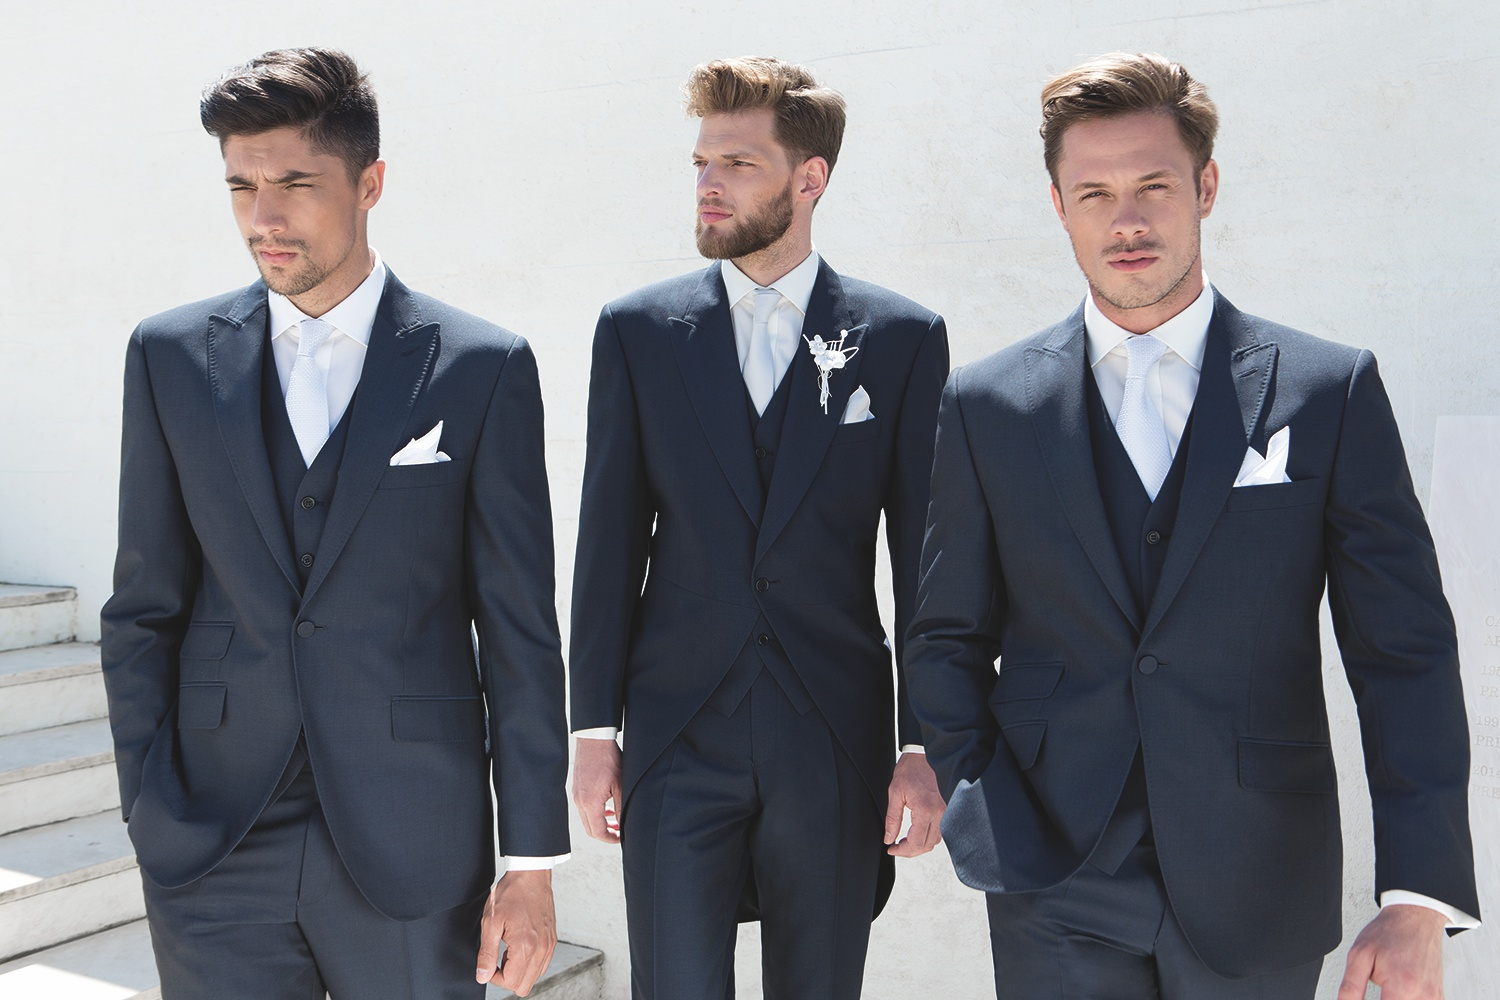 Wedding suits for hire from. SG Menswear 1ae46434ca7